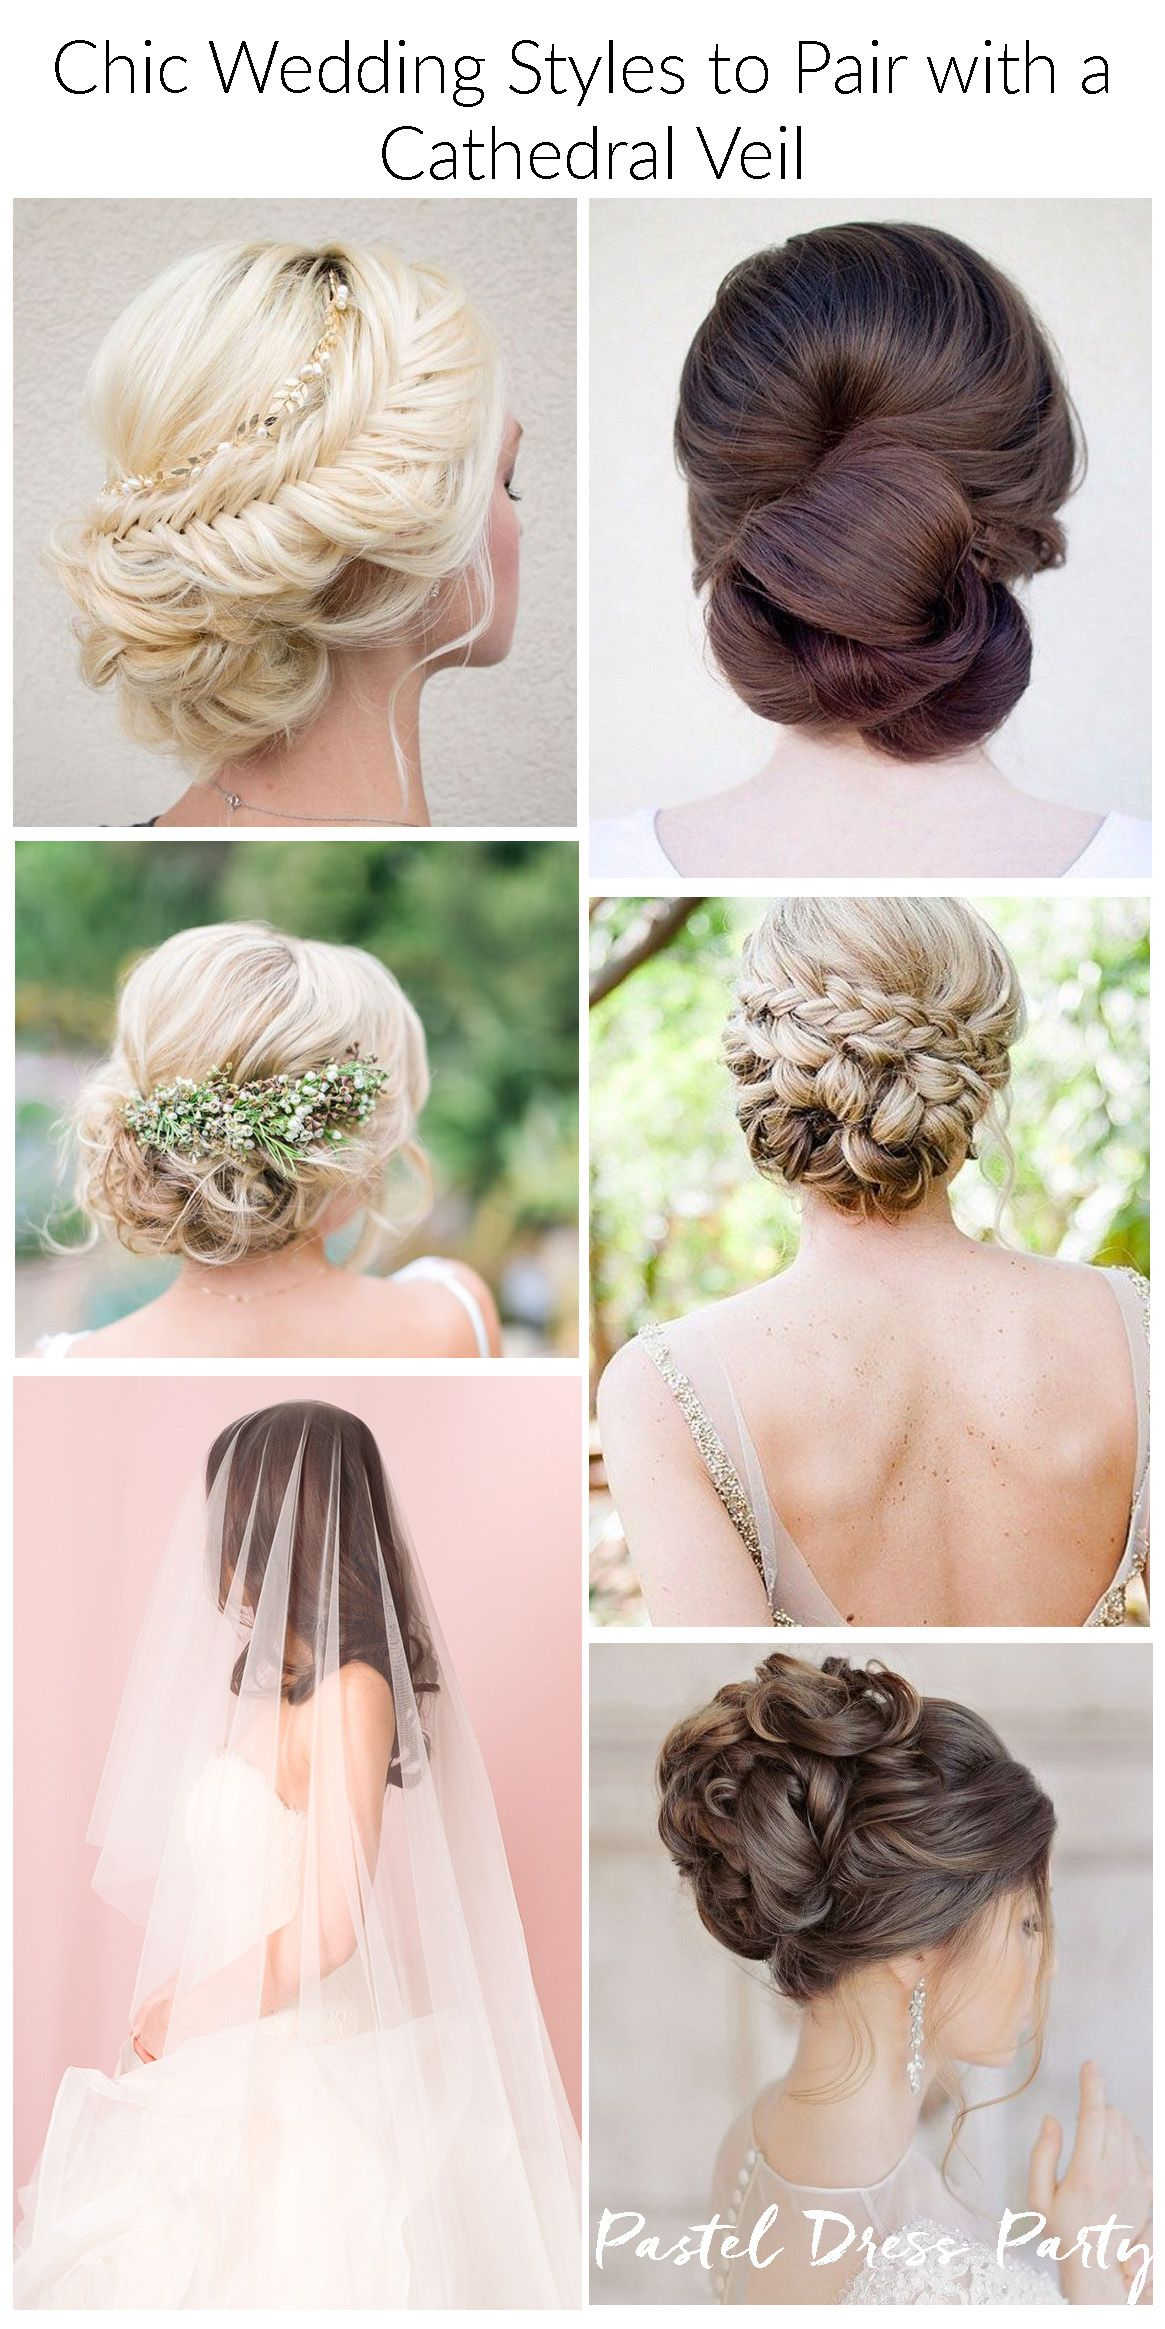 five chic wedding hairstyles to pair with a cathedral veil. these